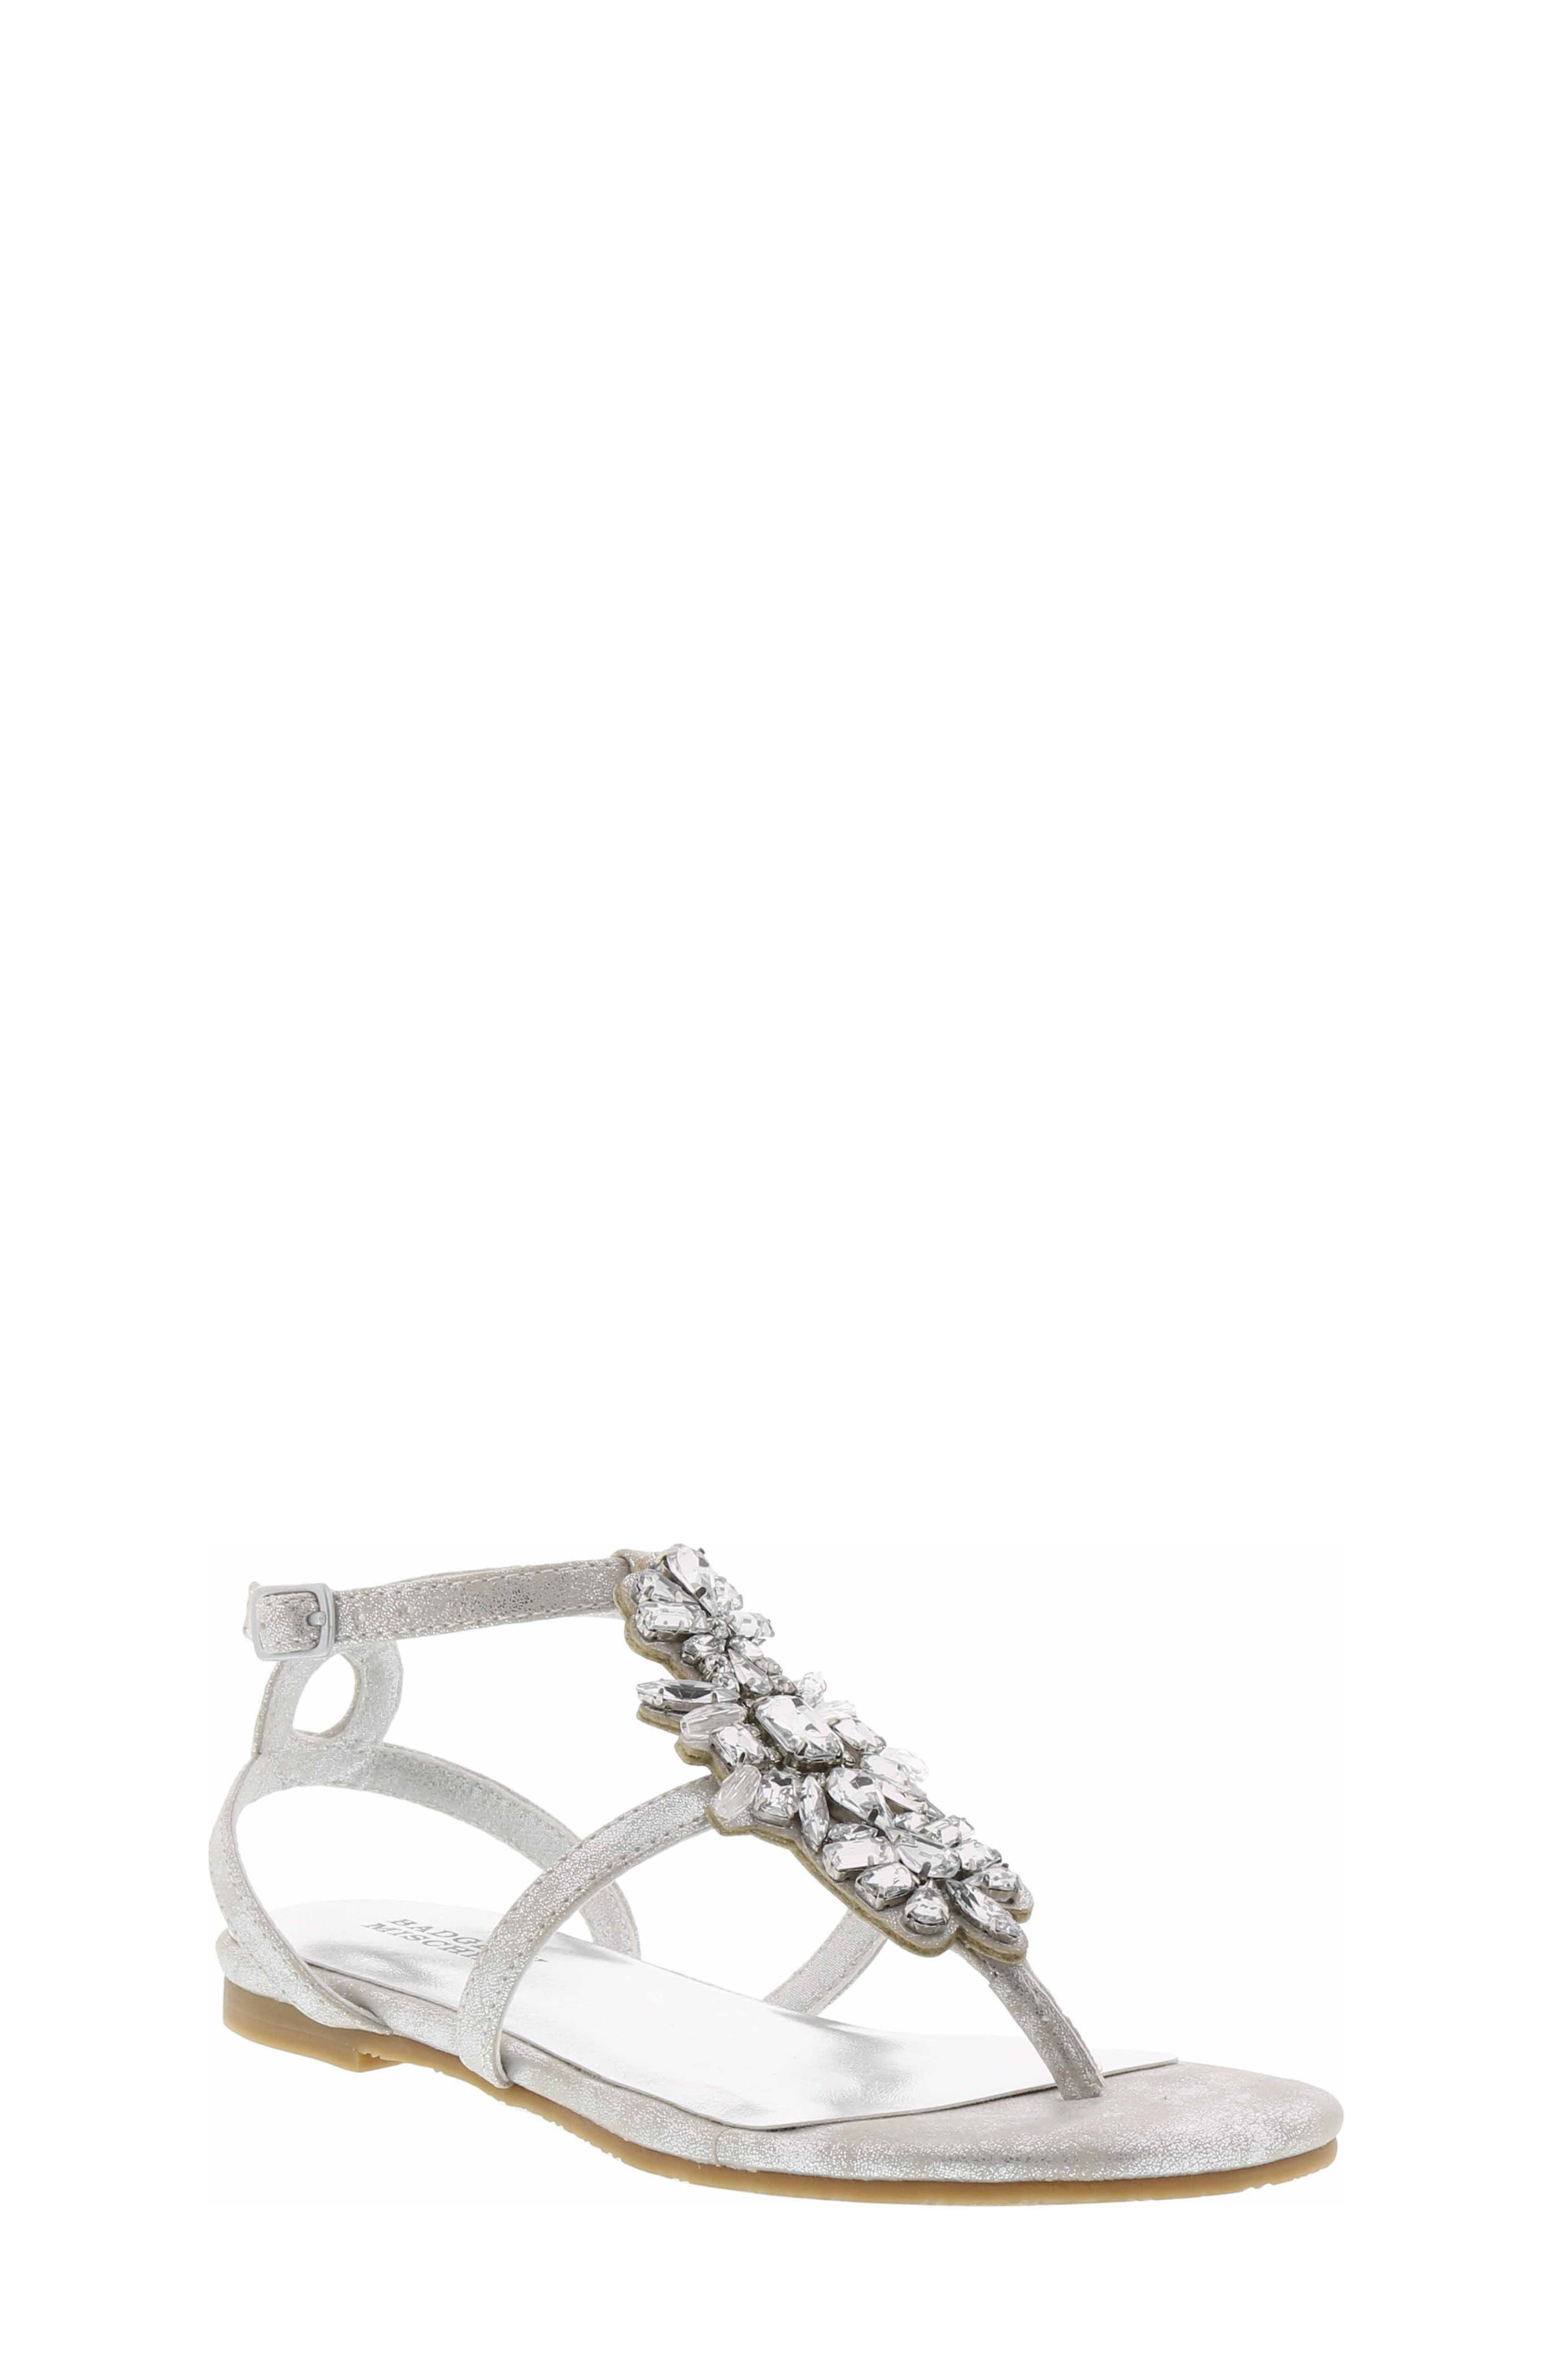 Cara Barstow Embellished Sandal,                             Main thumbnail 1, color,                             Light Silver